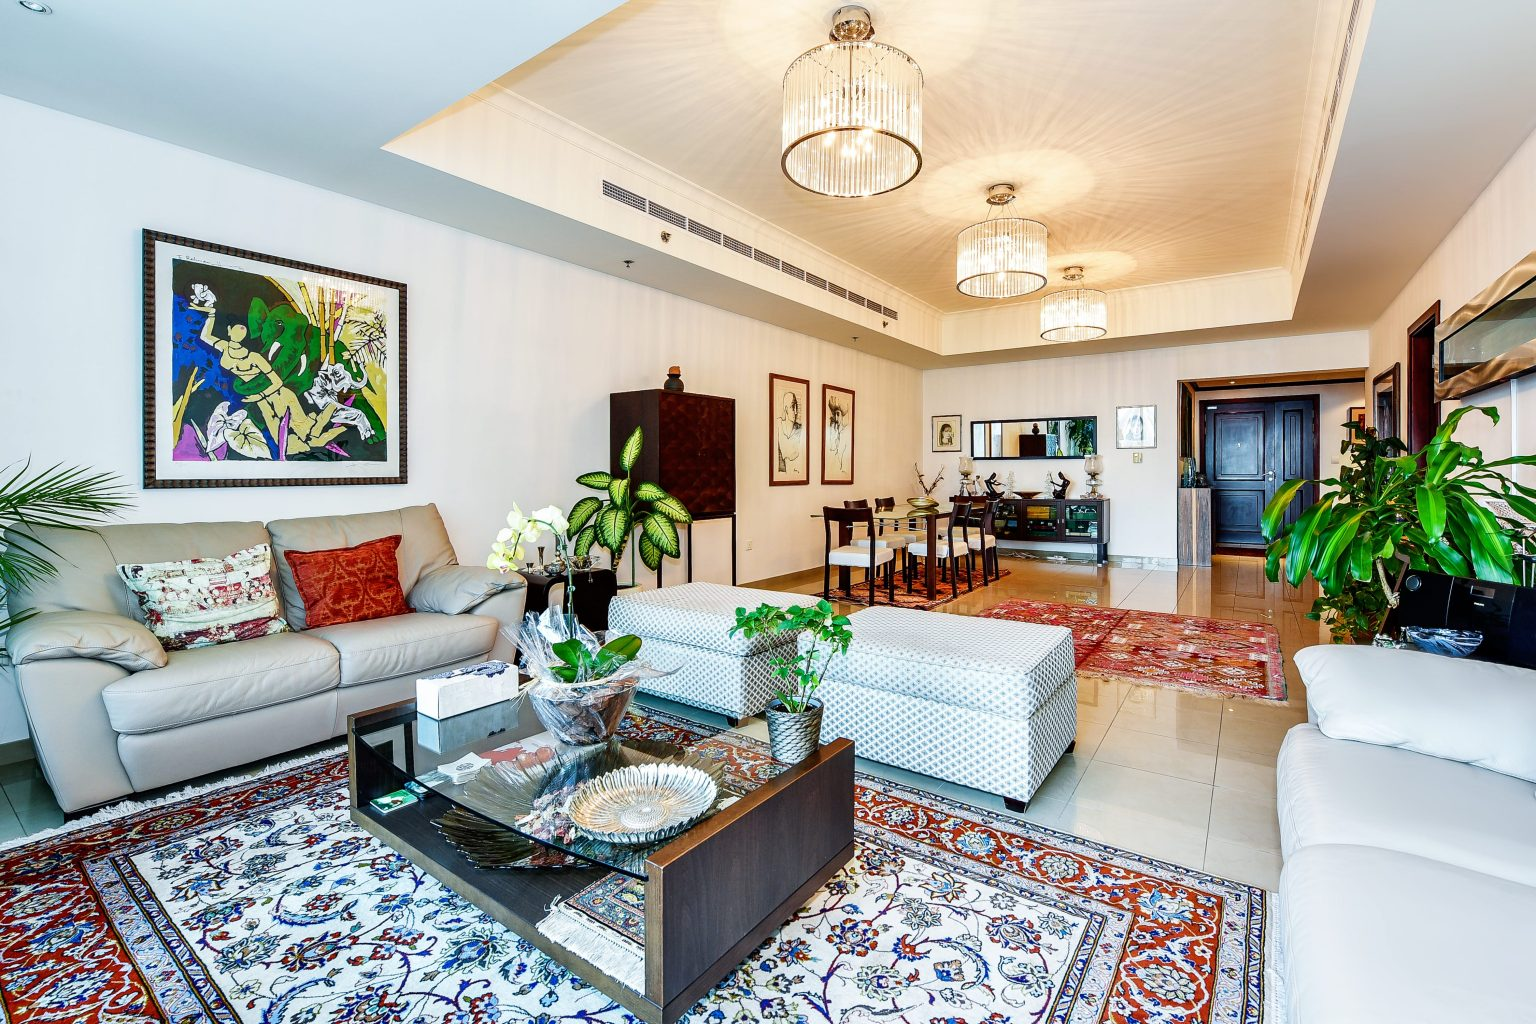 5 Best Areas to Rent 1 Bedroom Apartments in Dubai. - Best ...